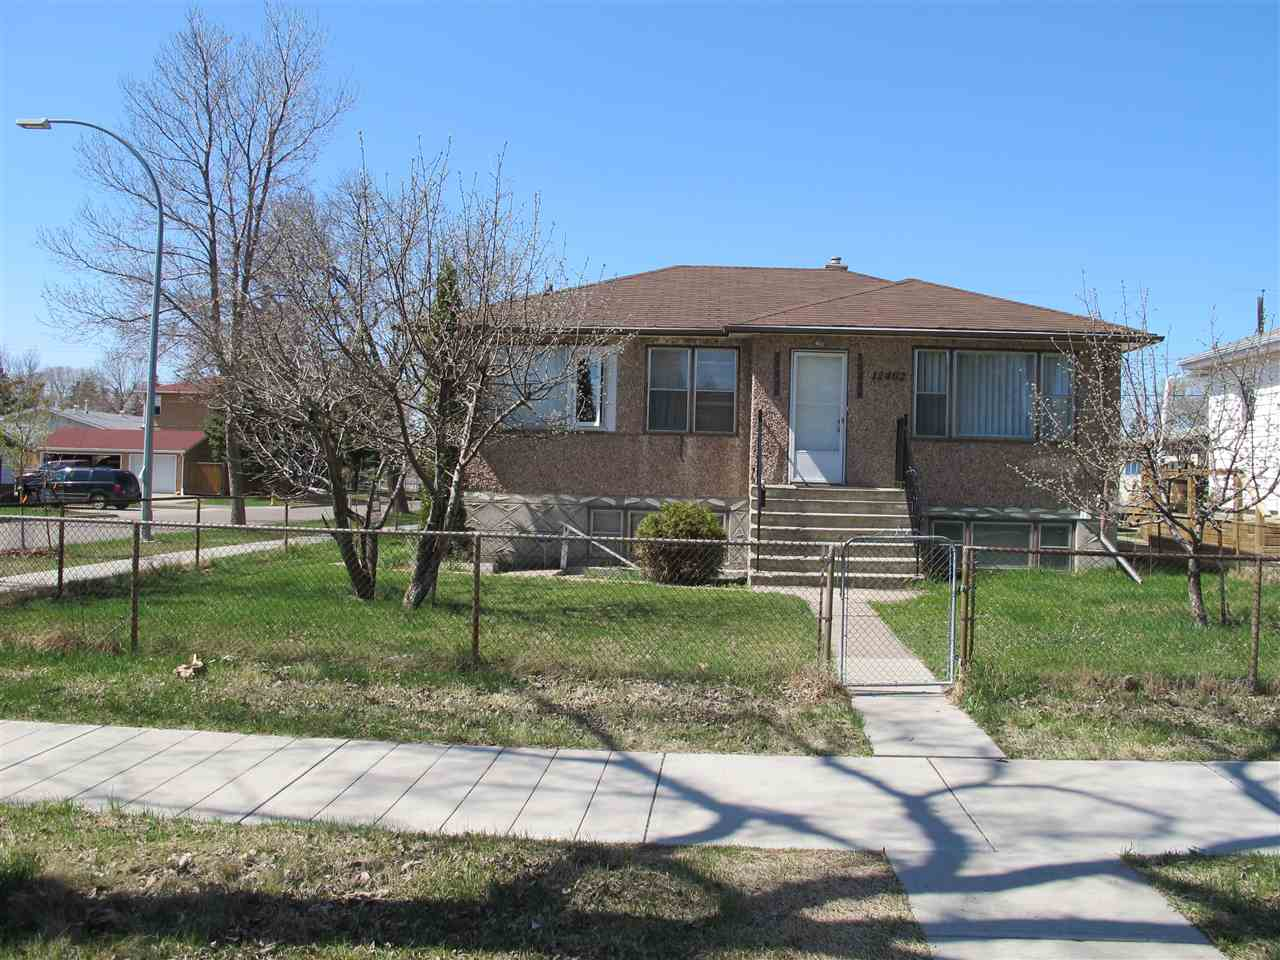 Investor Opportunity.  Raised bungalow with separate entrance to the basement.  3 bedrooms up plus 1 bedroom/den in the basement.  Double 25'x25' detached garage.  Basement with a second stove and fridge.  Great potential. large 50'x125' lot.  Infill project potential.